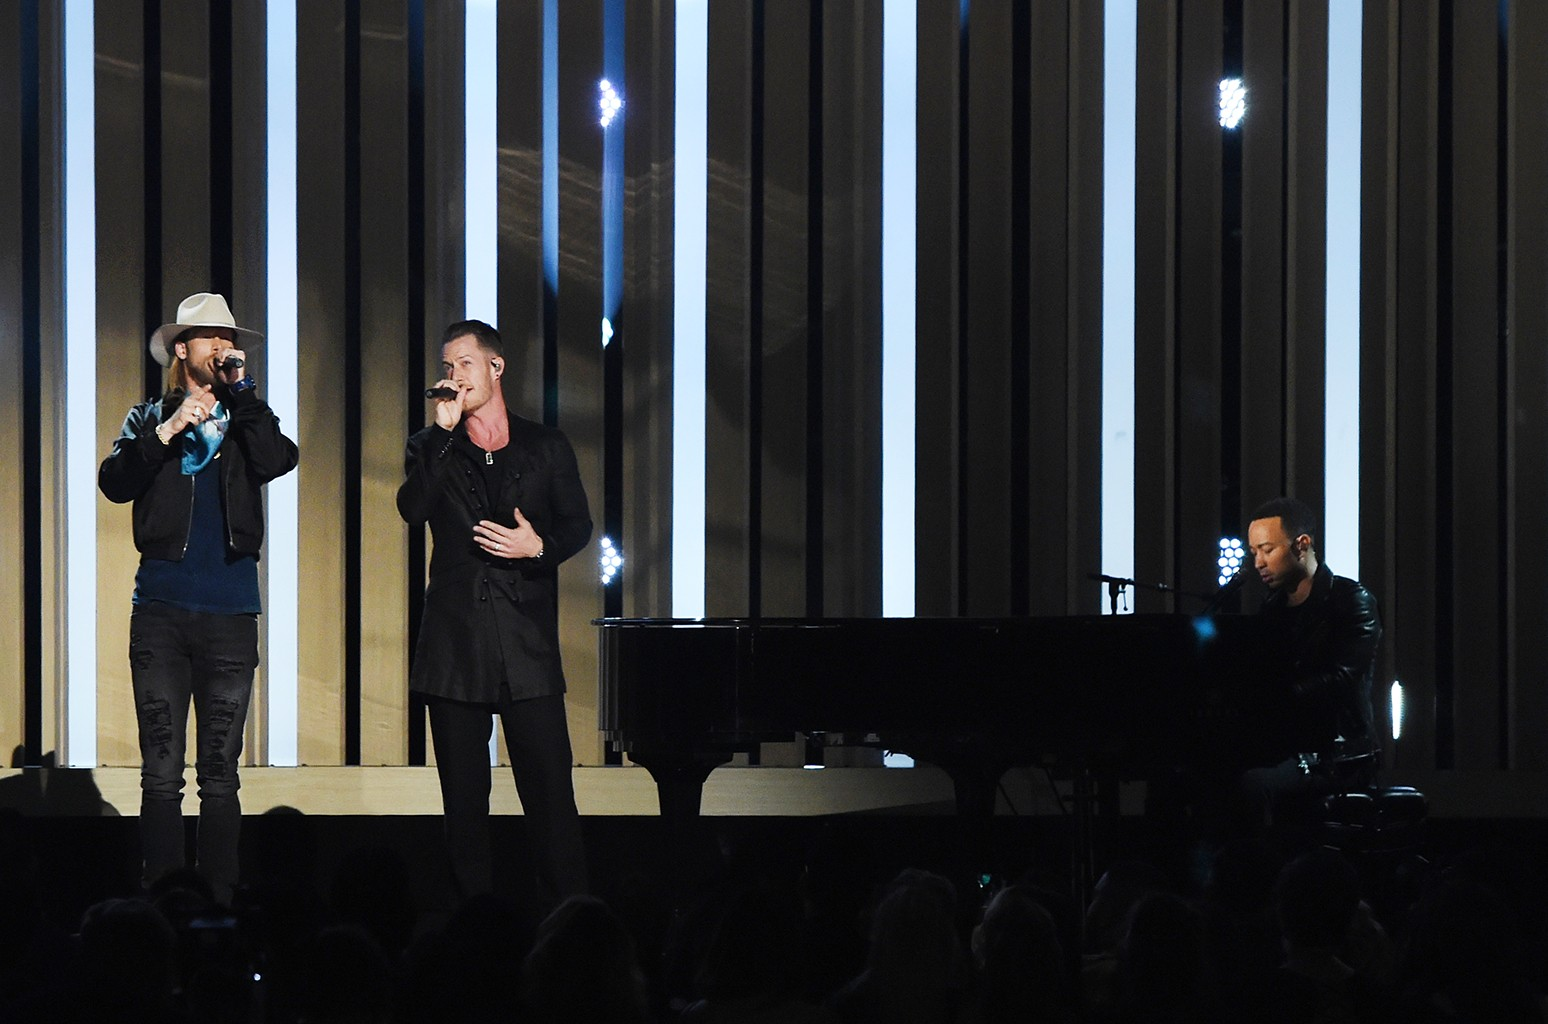 (L-R) Brian Kelley and Tyler Hubbard of Florida Georgia Line with John Legend perform onstage during the 2017 Billboard Music Awards at T-Mobile Arena on May 21, 2017 in Las Vegas.